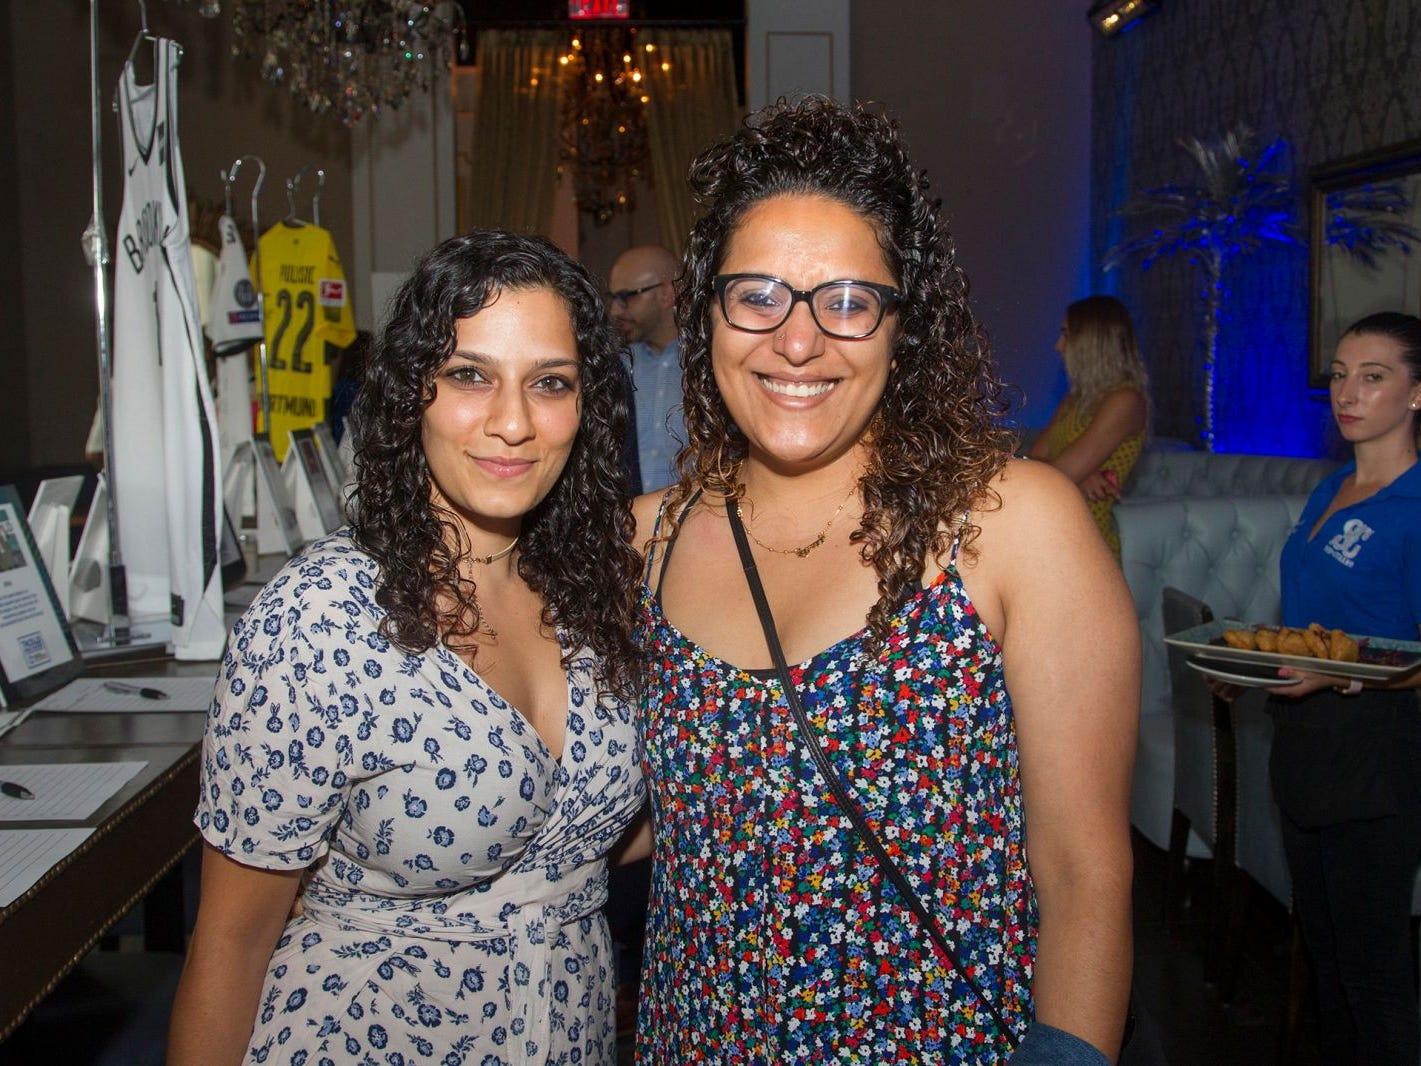 Mohini Merchant and Raakhee Mirchandari. Summer Samba Night benefitting Tackle Kids Cancer hosted by Cara Robles, Luis Robles (NY Red Bulls Goalkeeper), Jennifer Farber, and Dr. Michael Farber at Son Cubano in West New York. 08/08/2018